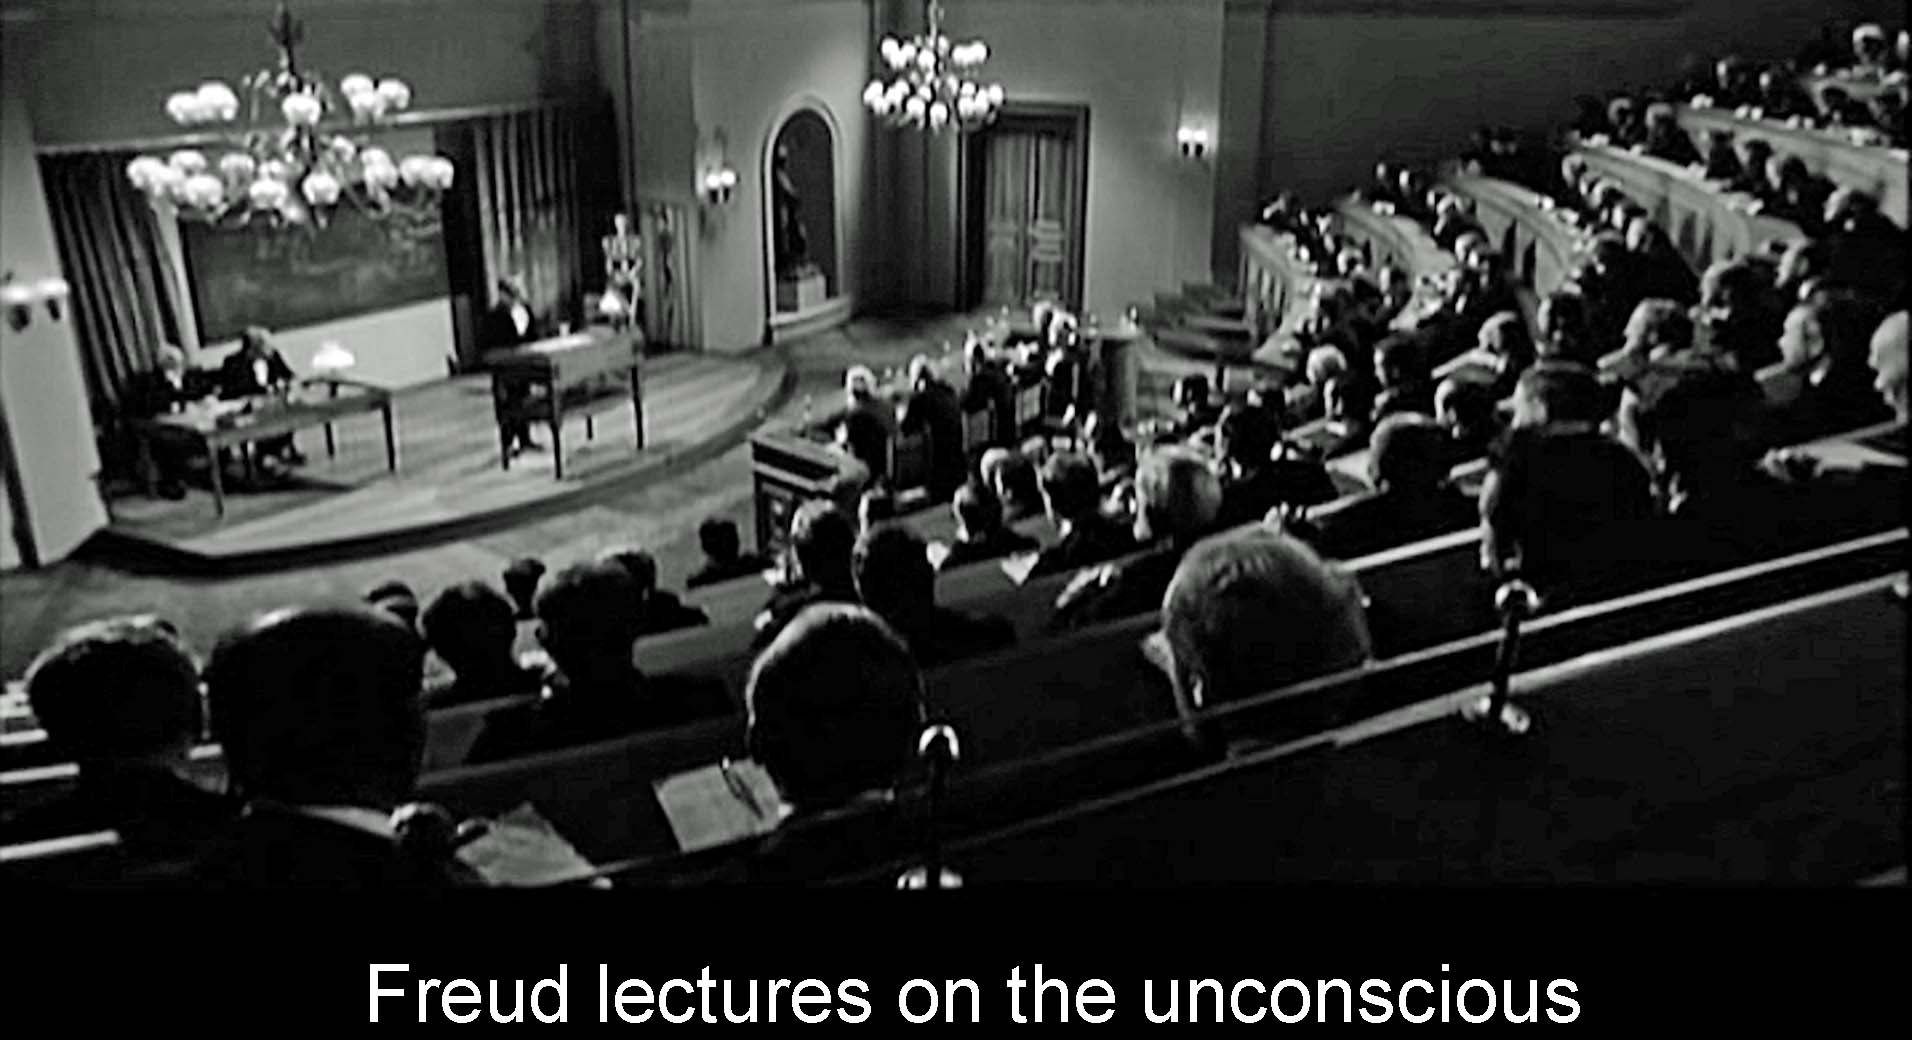 Freud lectures on the unconscious